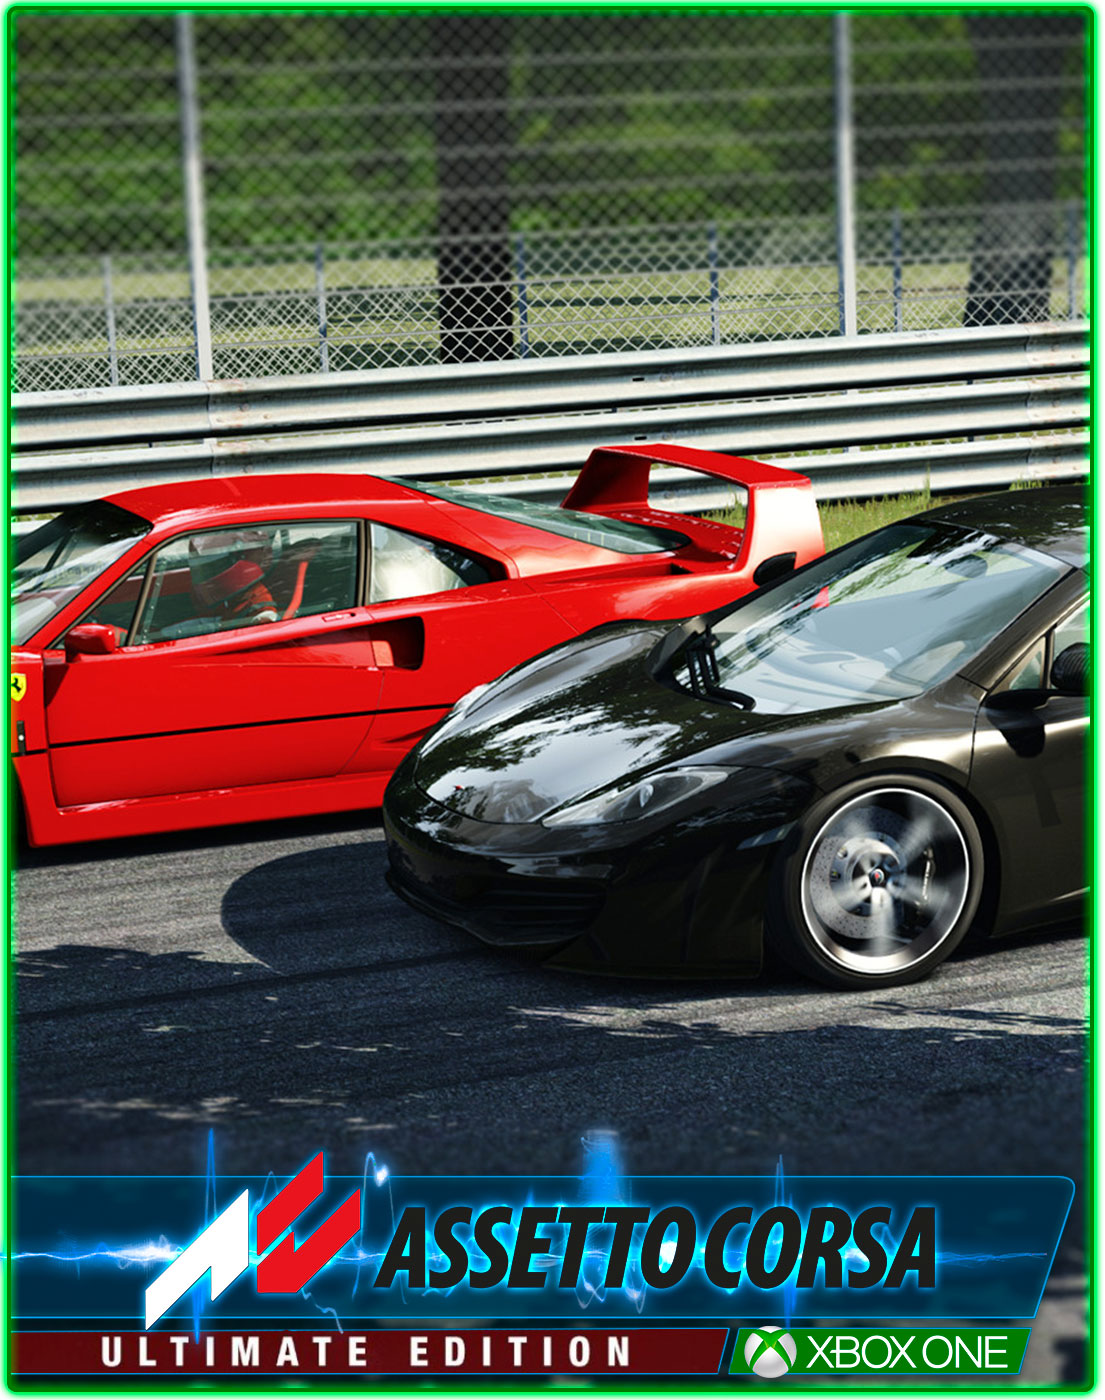 Assetto Corsa Ultimate Edition(XBOX ONE) 2019